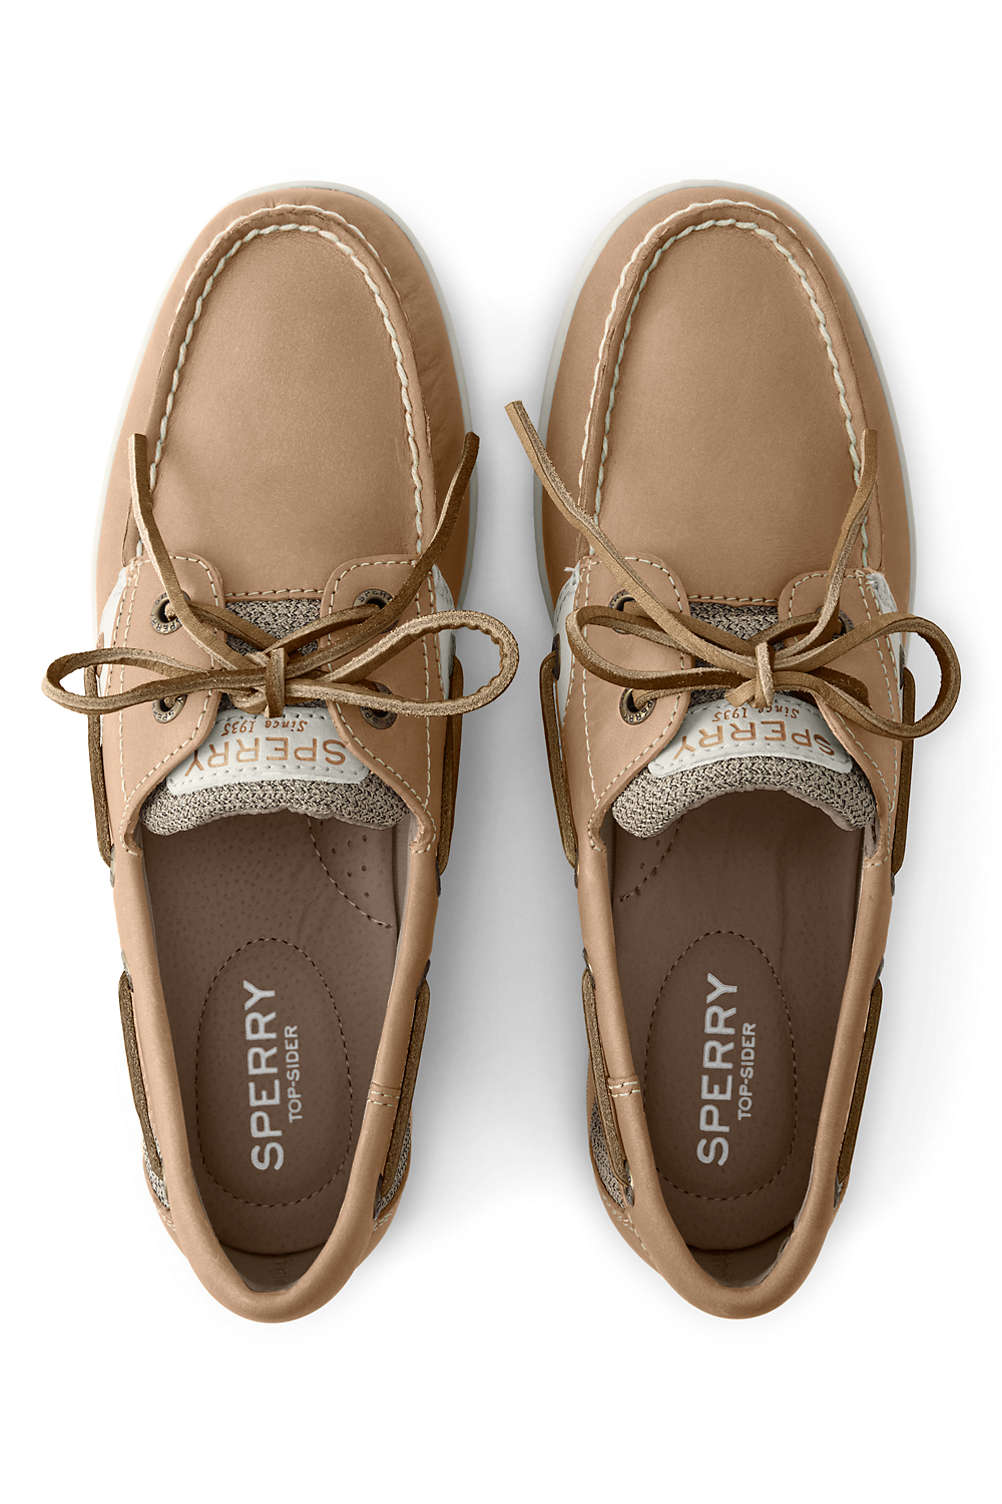 e8d95a5528cb School Uniform Women s Sperry Koifish Boat Shoes from Lands  End